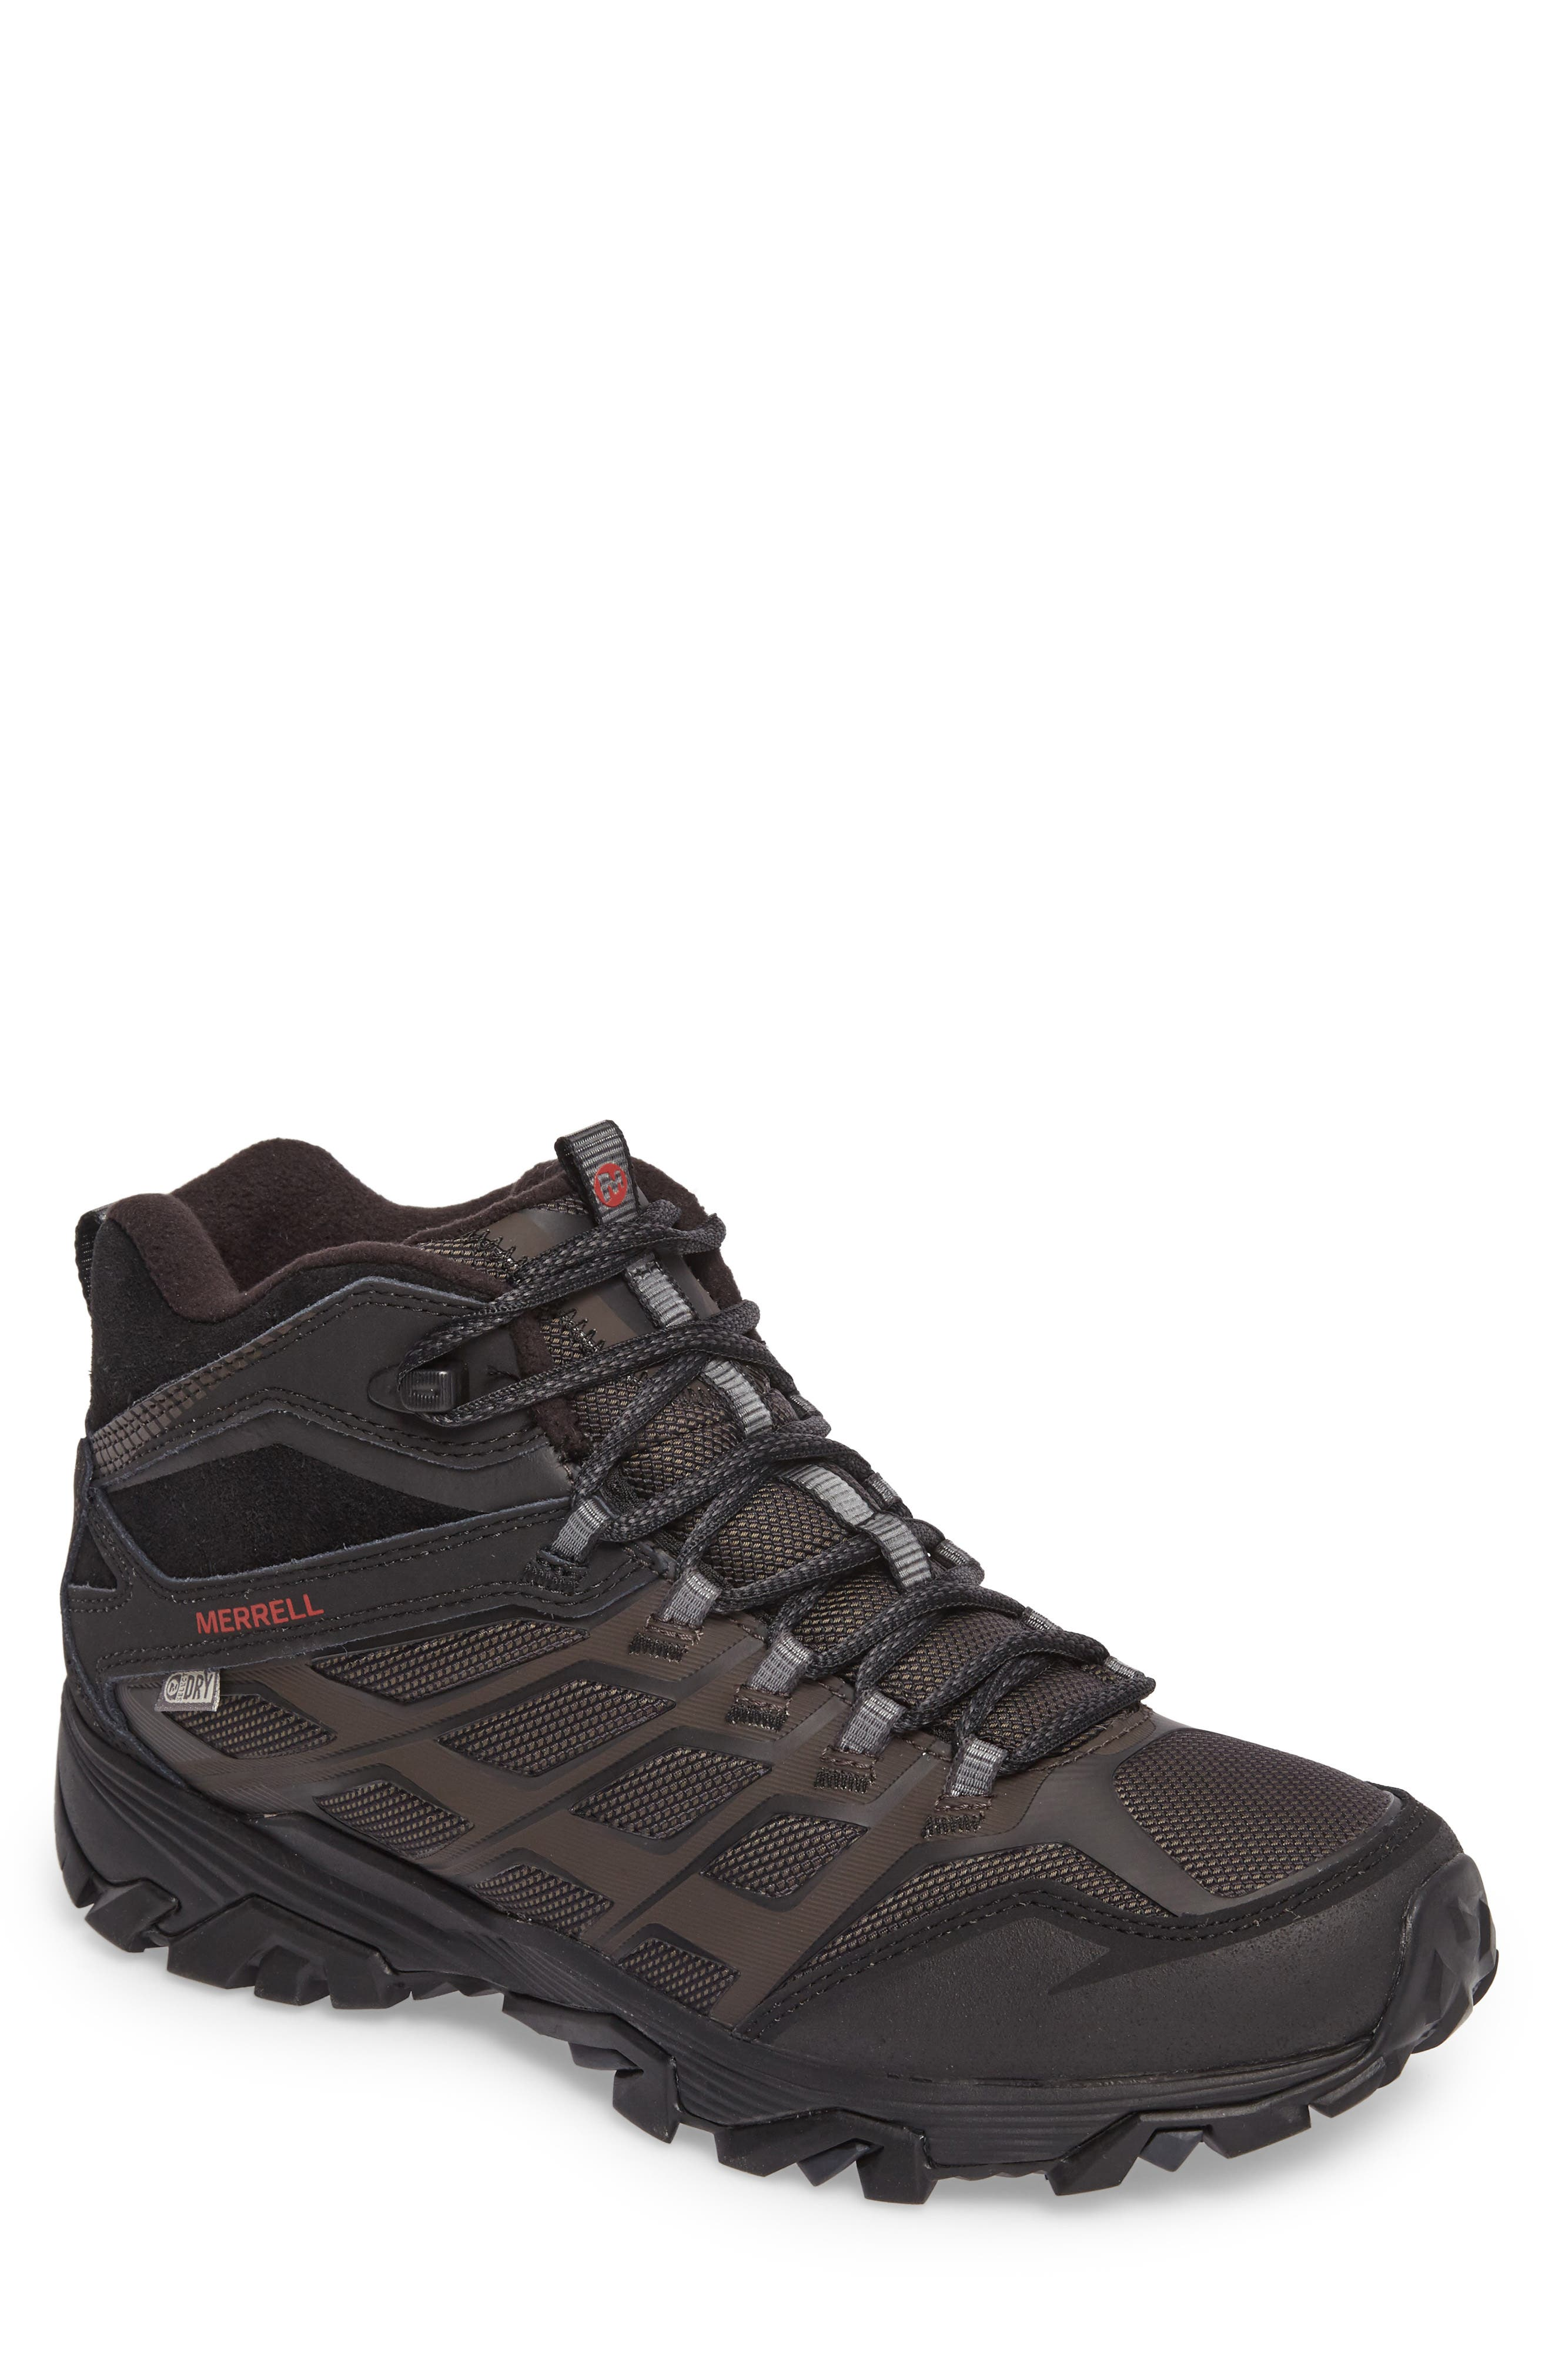 Moab FST Ice Thermo Waterproof Hiking Shoe,                         Main,                         color, 001